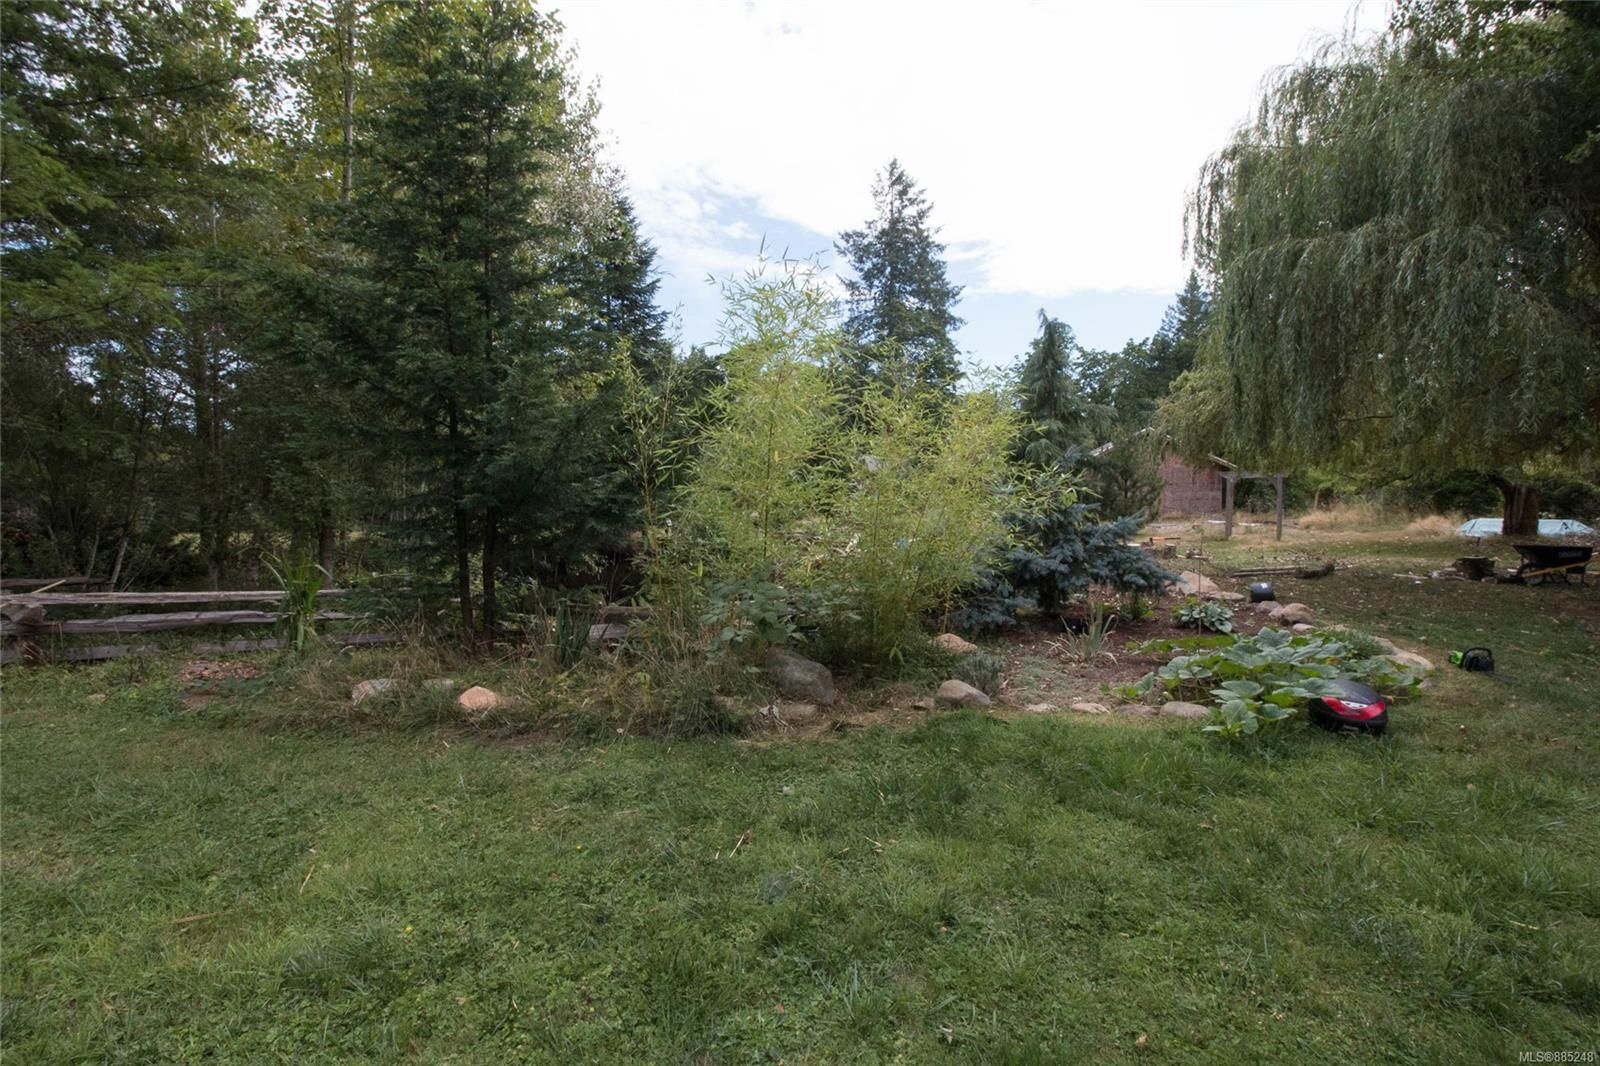 Photo 10: Photos: 5866 Nelson Rd in : CV Courtenay North House for sale (Comox Valley)  : MLS®# 885248